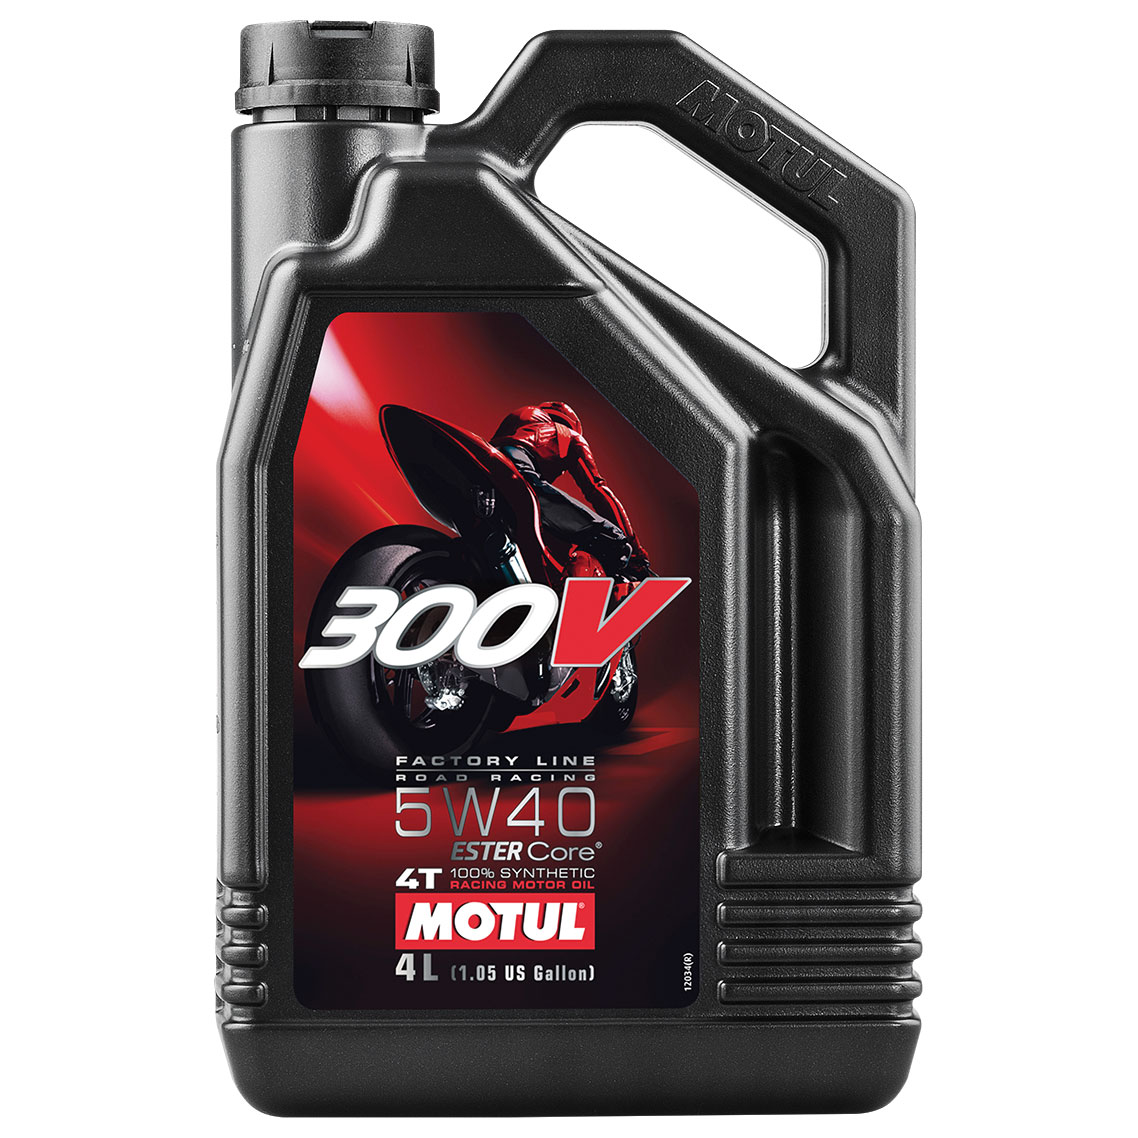 motul 300v synthetic 5w40 motor oil 4 liter 104115. Black Bedroom Furniture Sets. Home Design Ideas